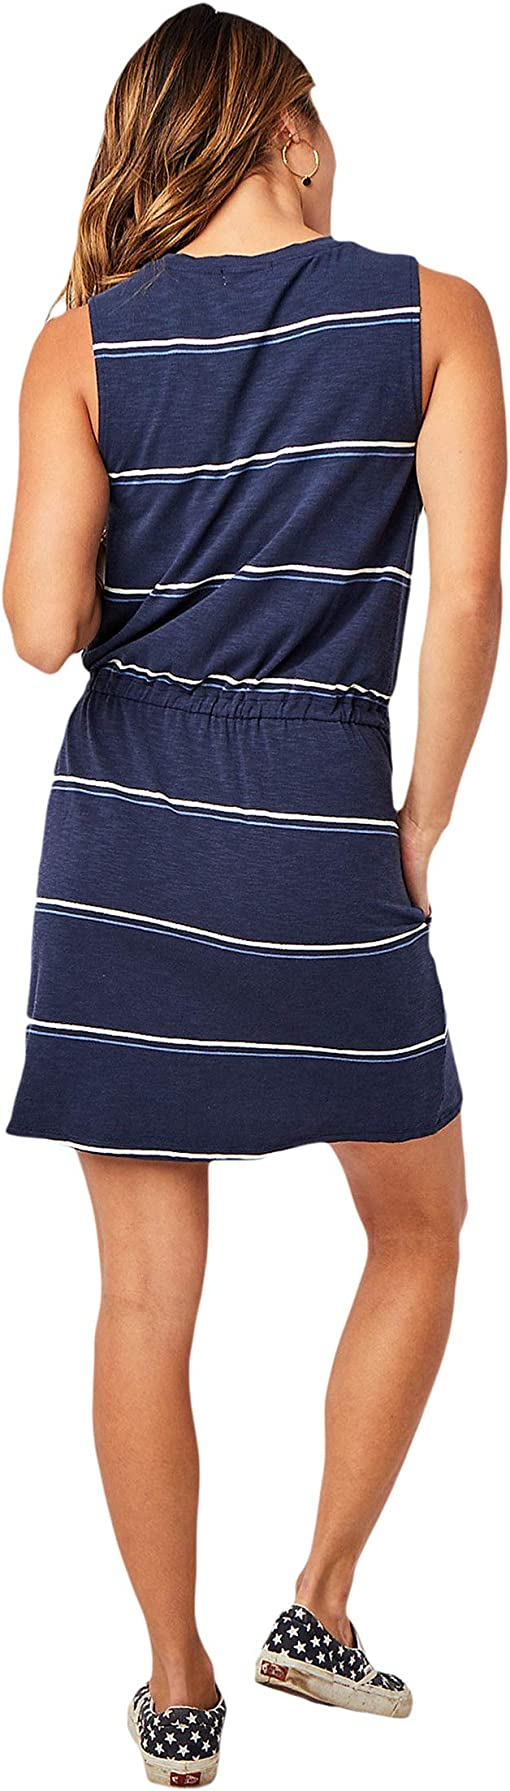 Navy Vintage Stripe